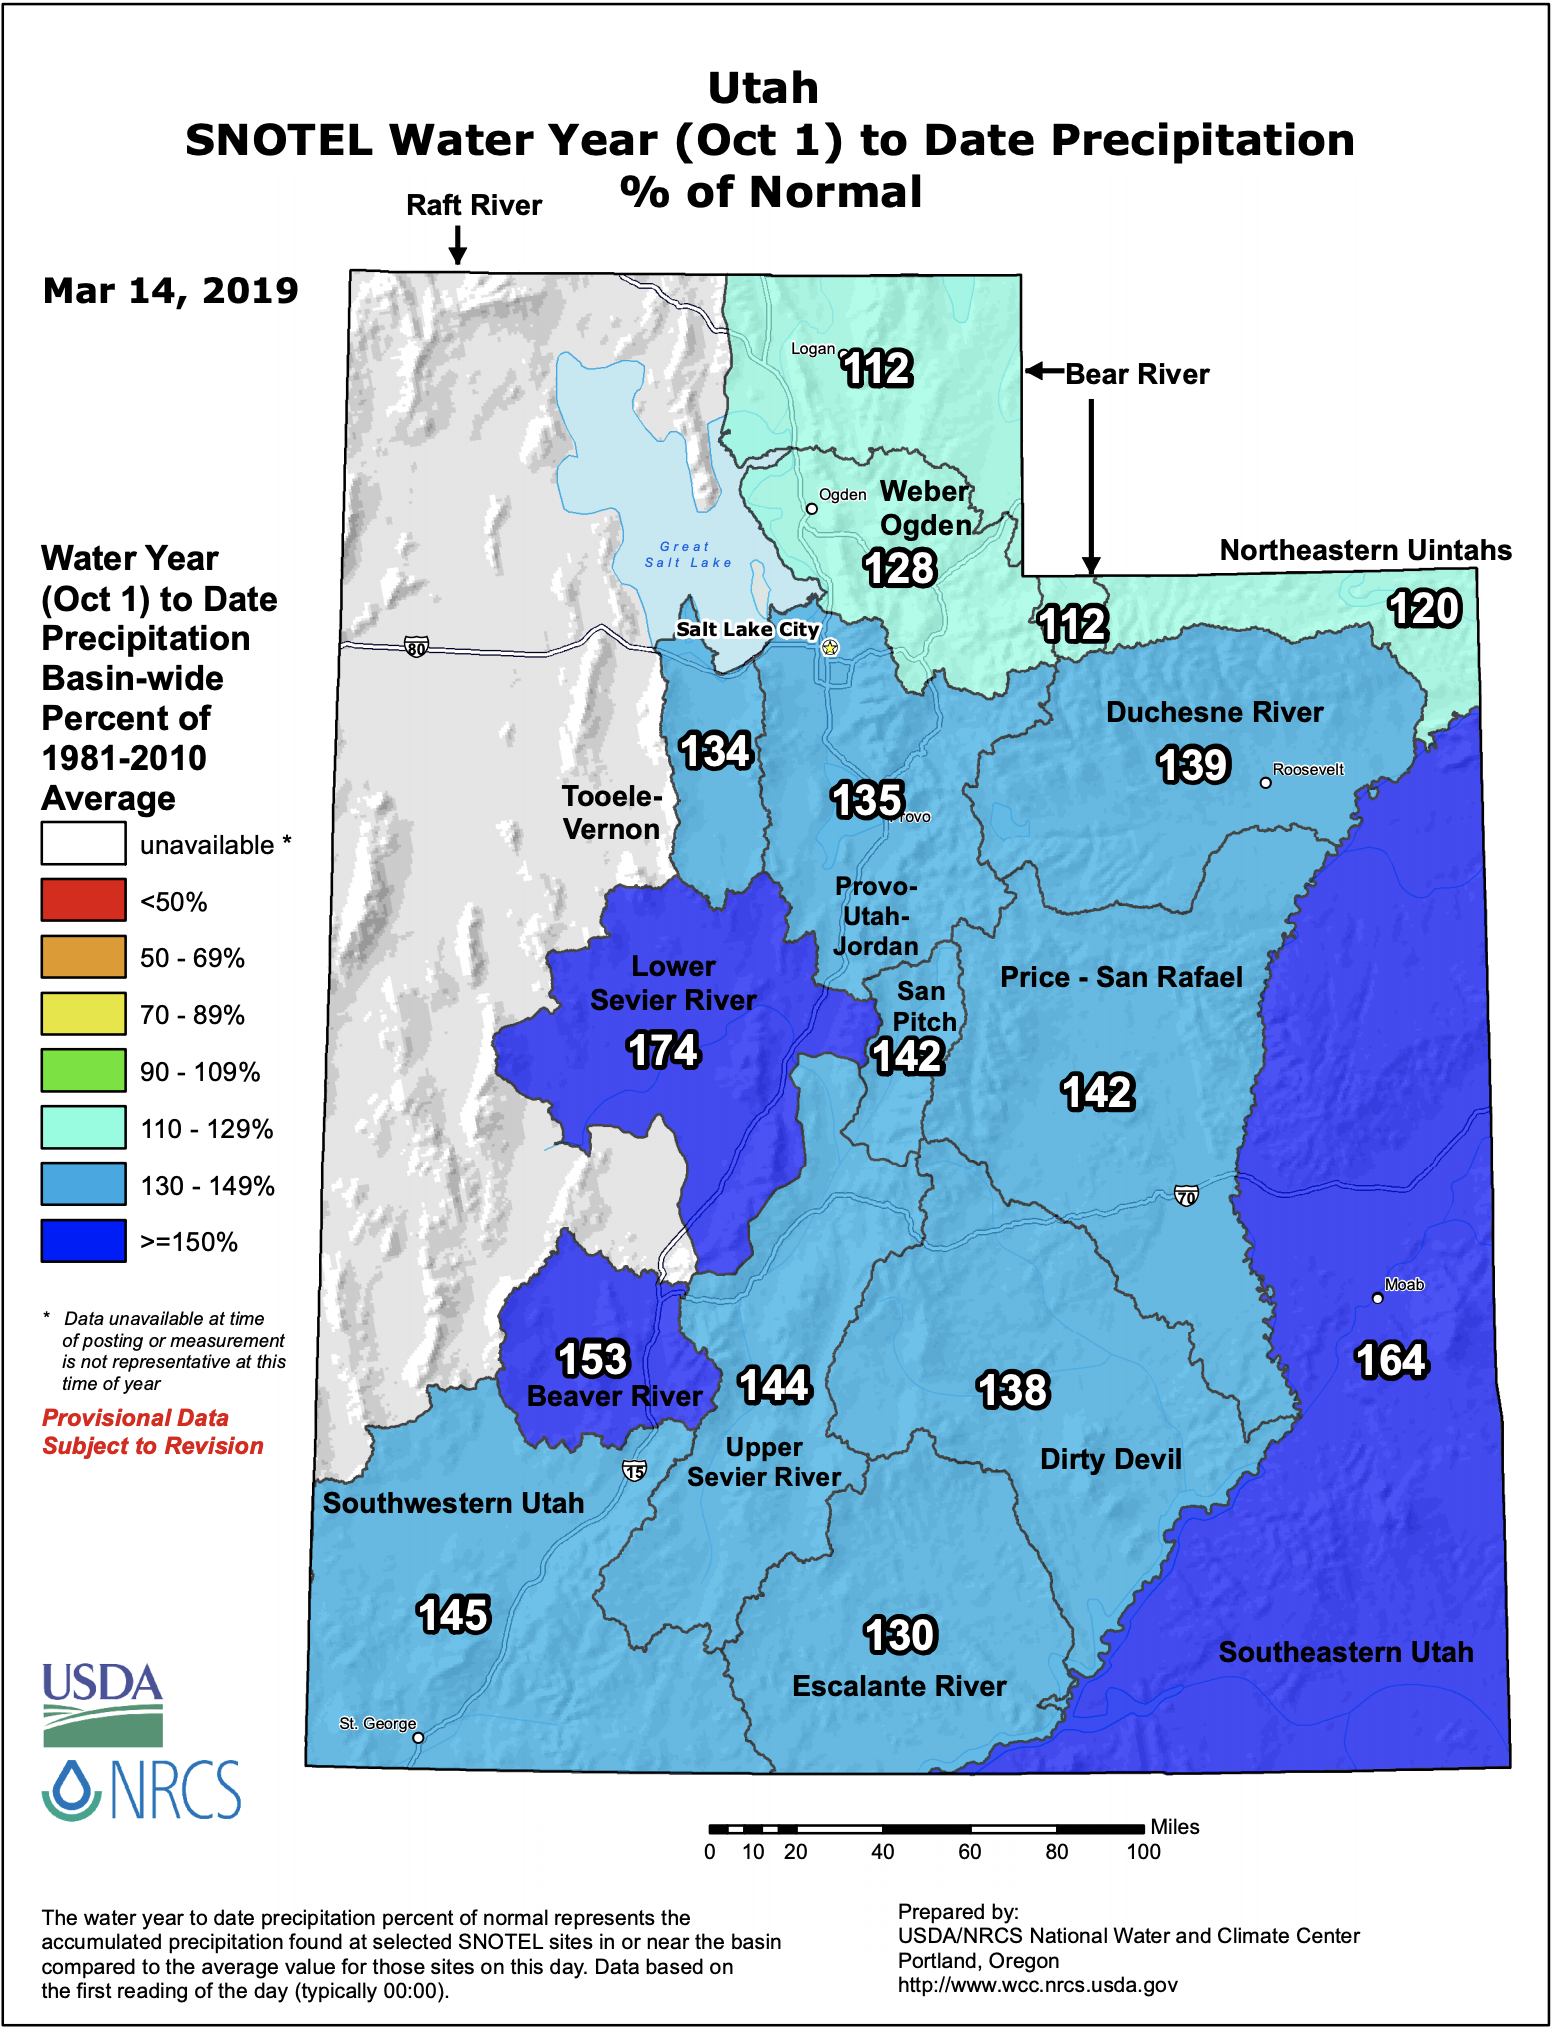 Utah basin-filled snow water equivalent map courtesy of www.wcc.nrcs.usda.gov